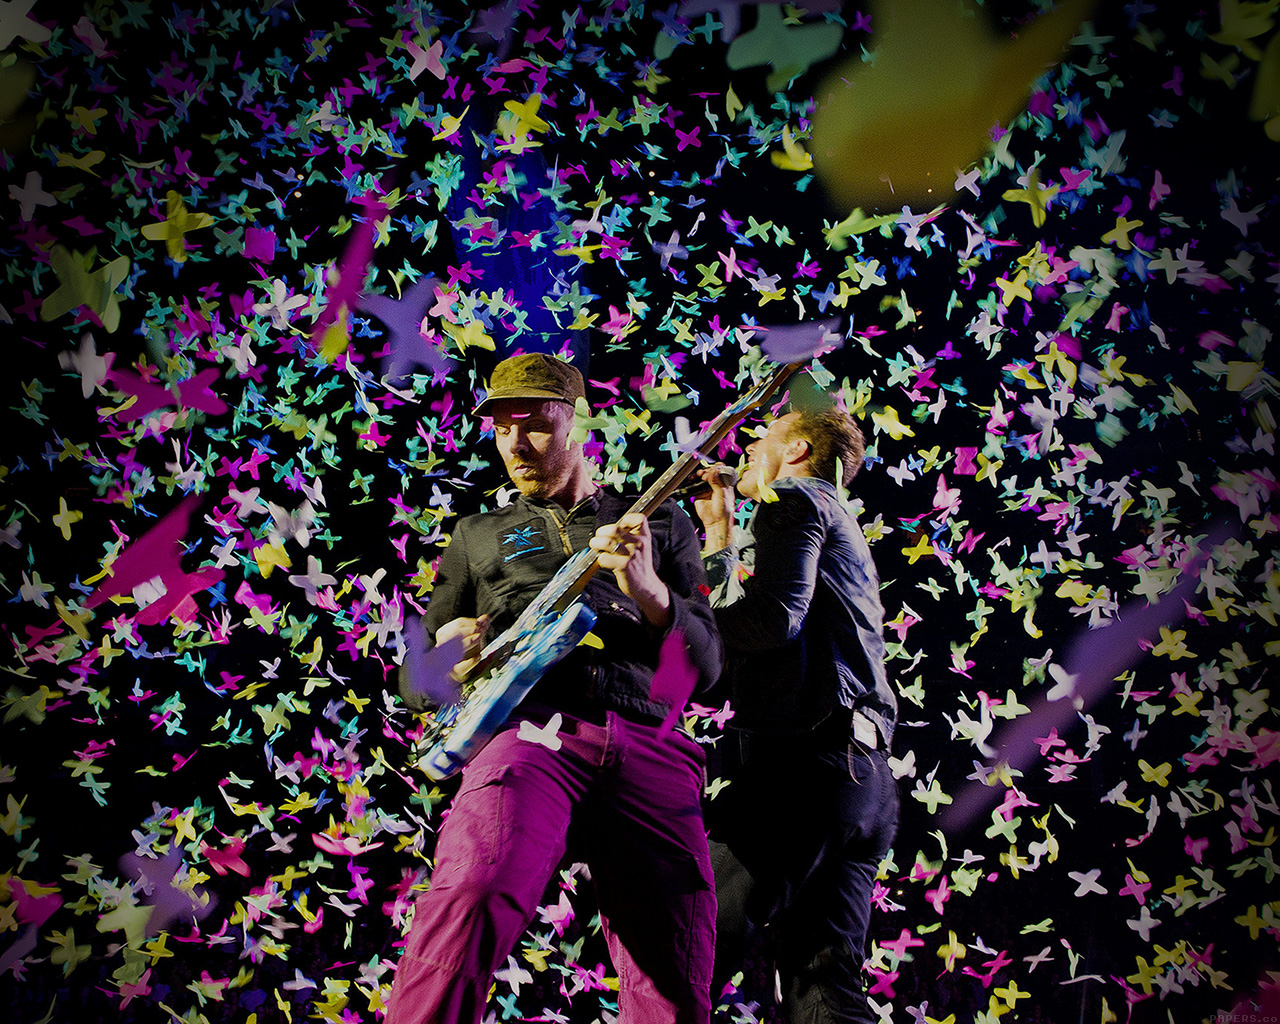 hd68-coldplay-concert-music-art-band - Papers.co